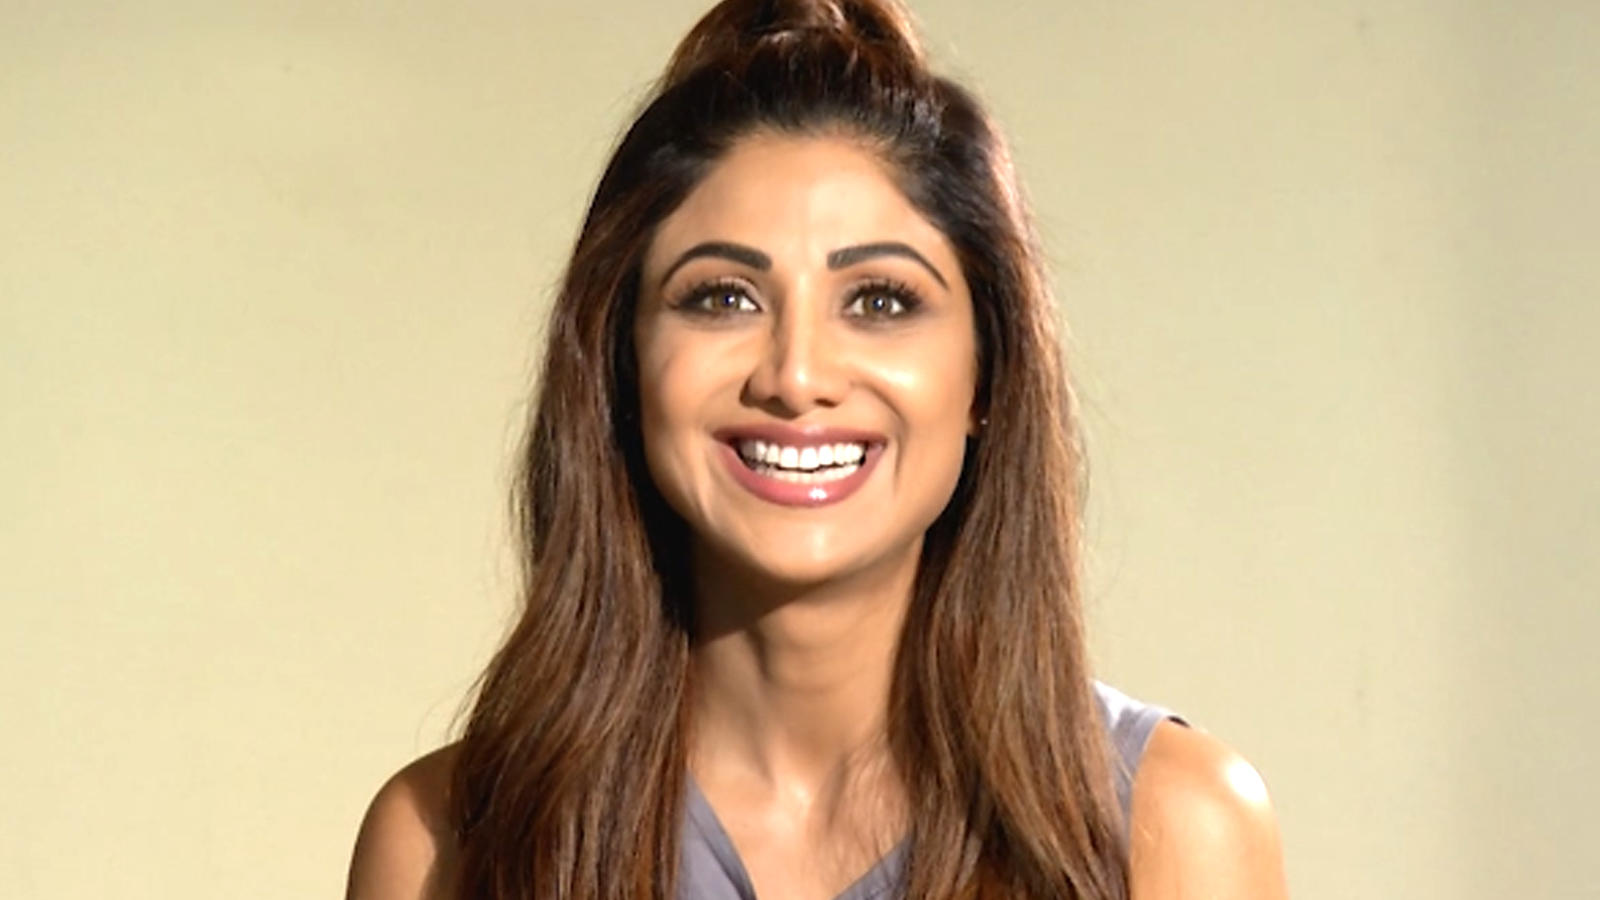 From her first vacation ever to the age she start dating, Shilpa Shetty reveals all